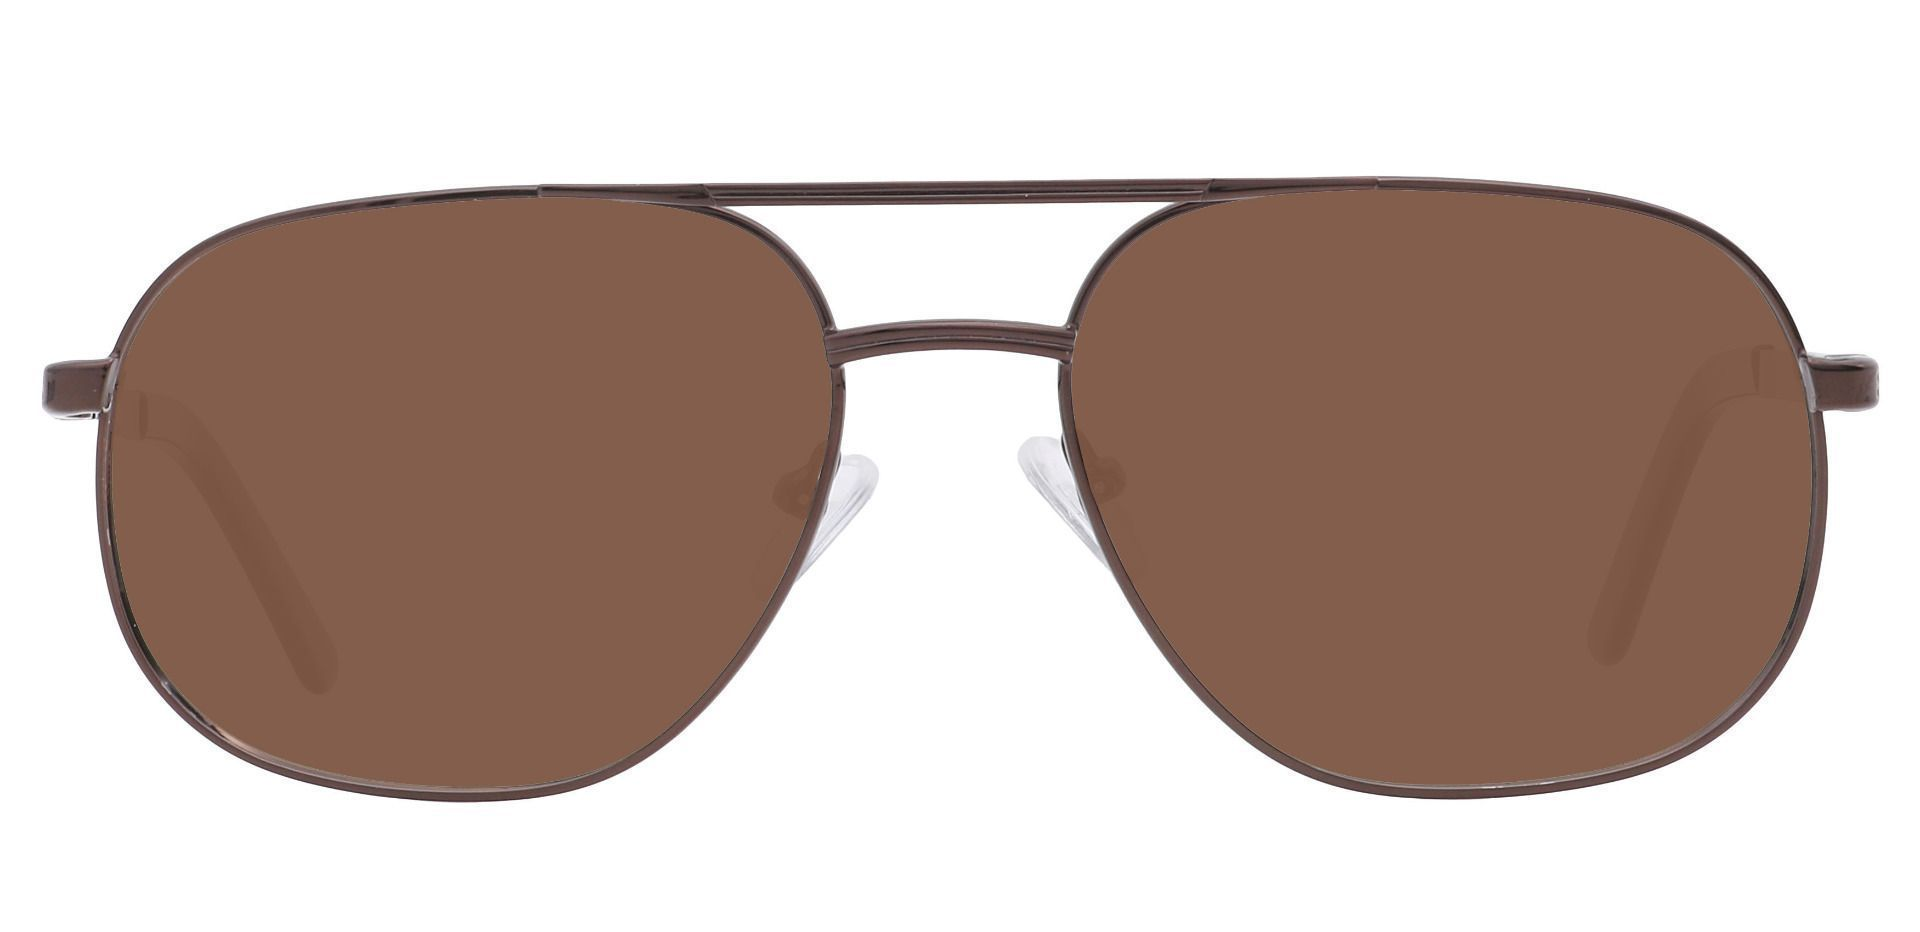 Locke Aviator Single Vision Sunglasses - Brown Frame With Brown Lenses